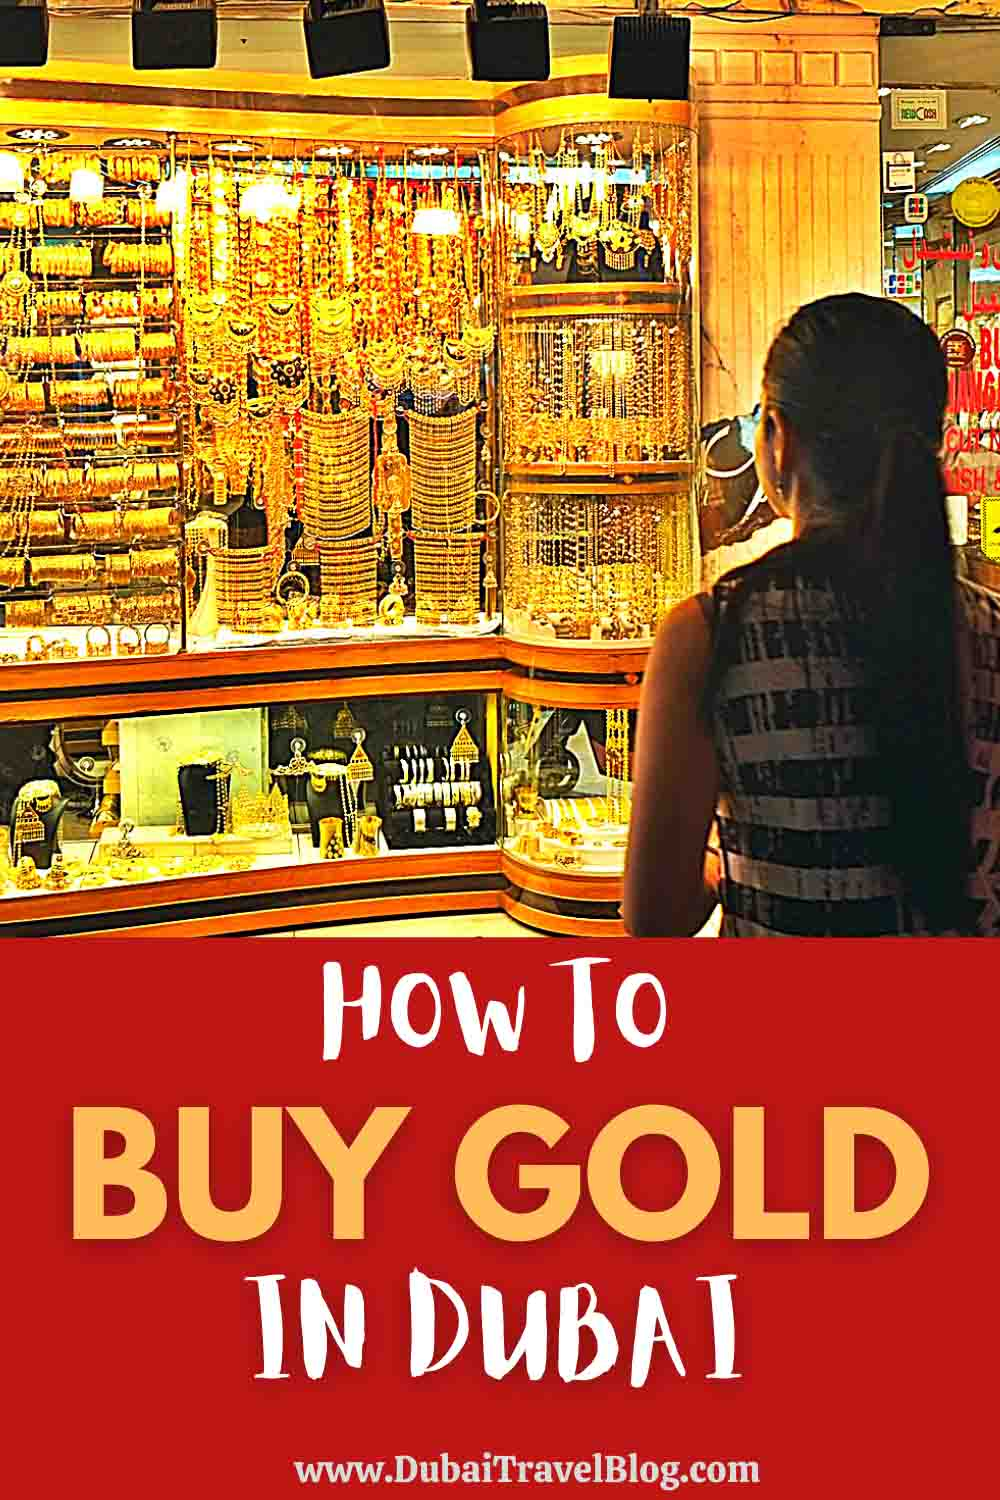 How to buy gold in Dubai